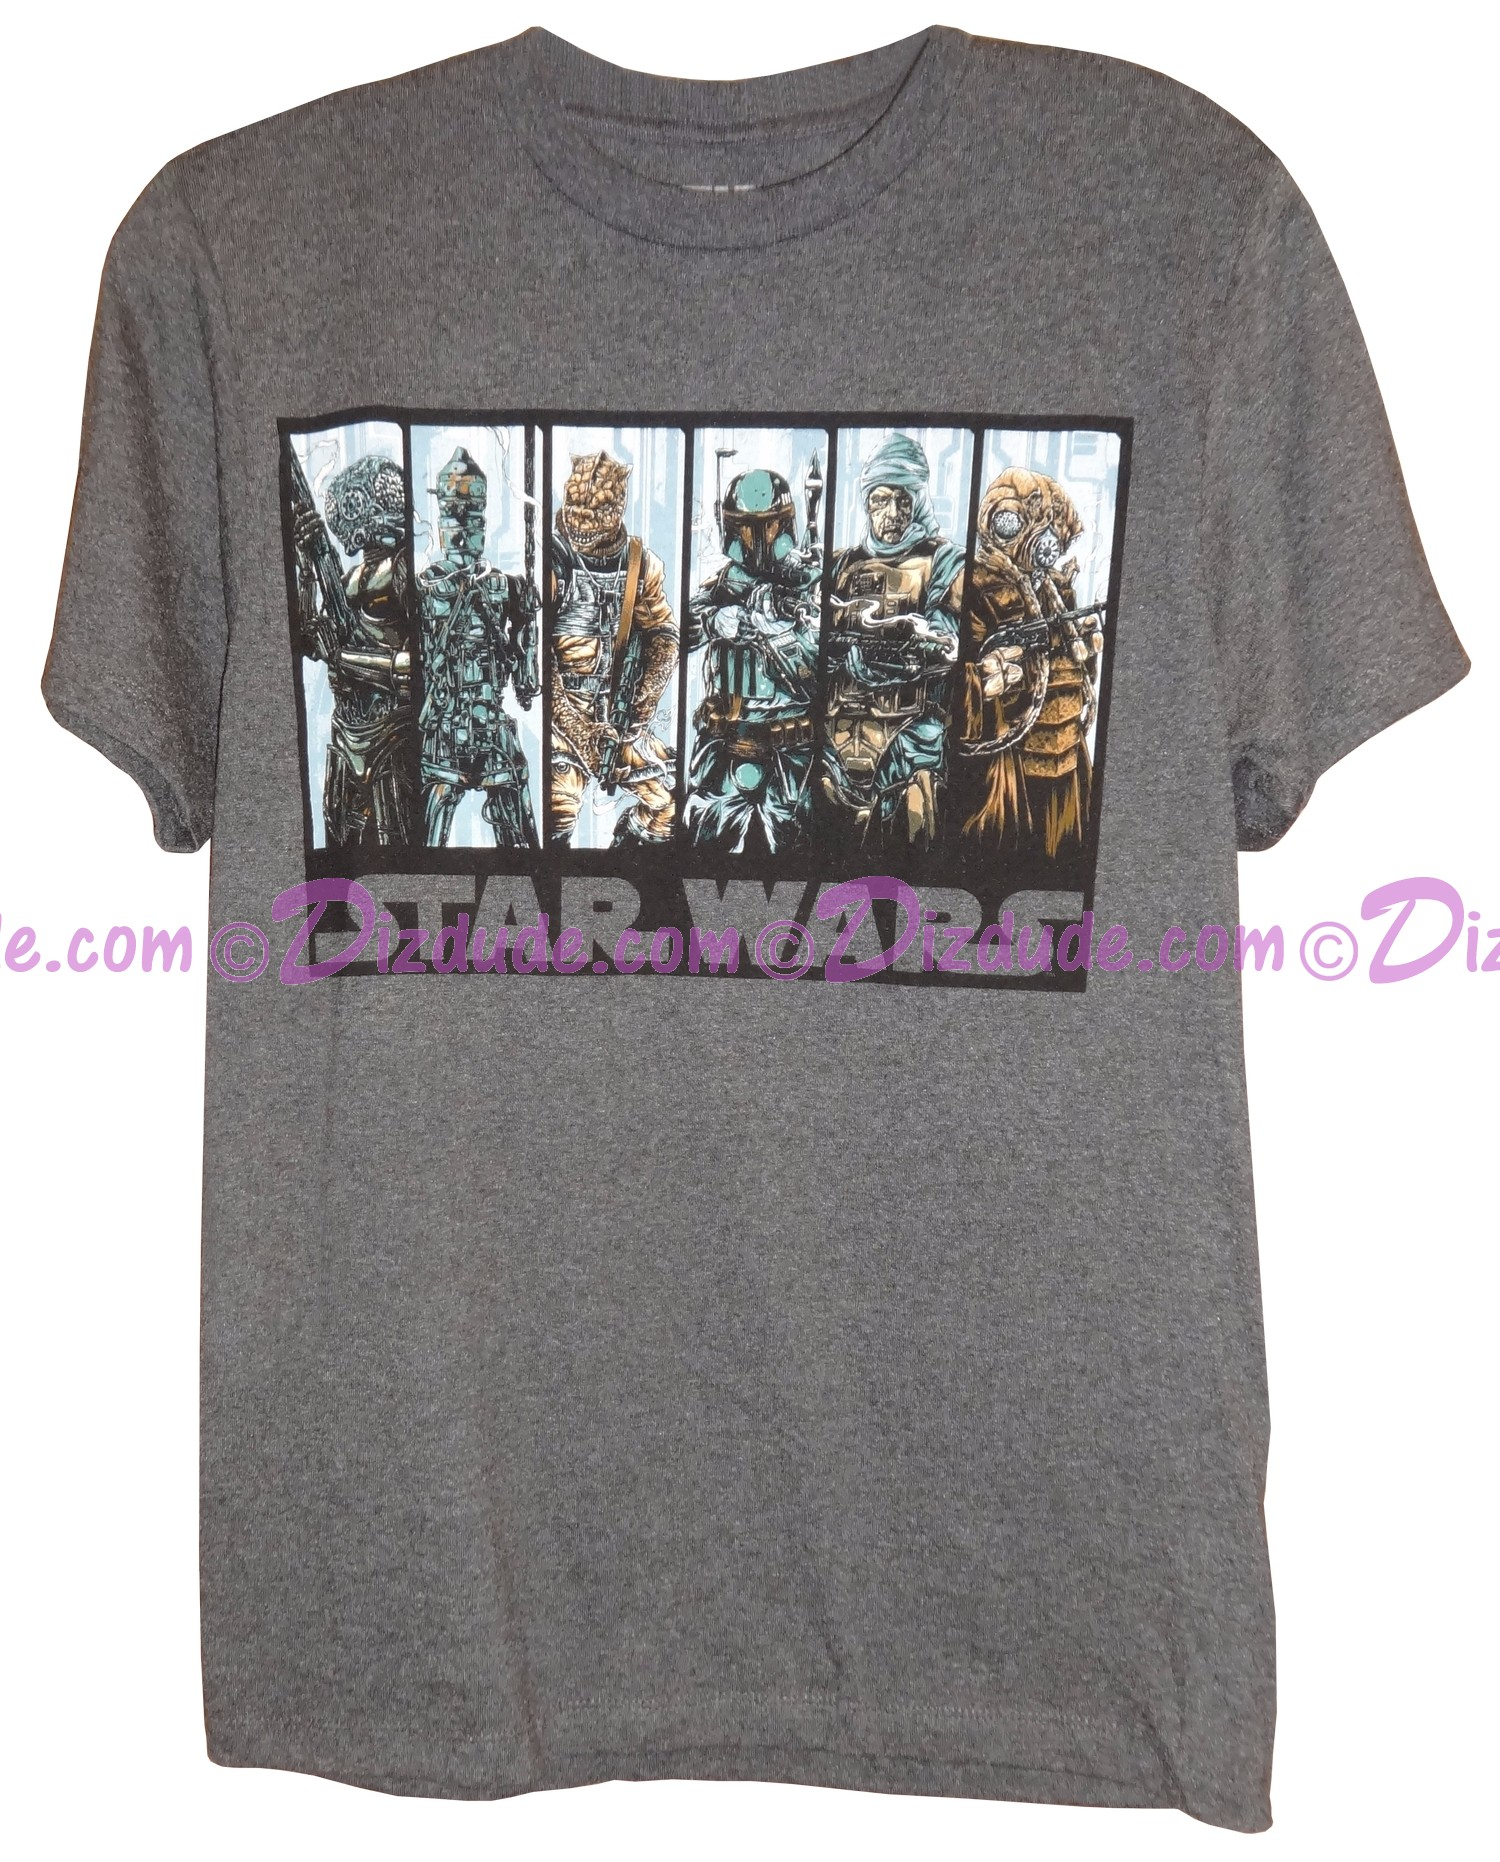 Bounty Hunters Adult T-Shirt (Tshirt, T shirt or Tee) - Disney Star Wars © Dizdude.com